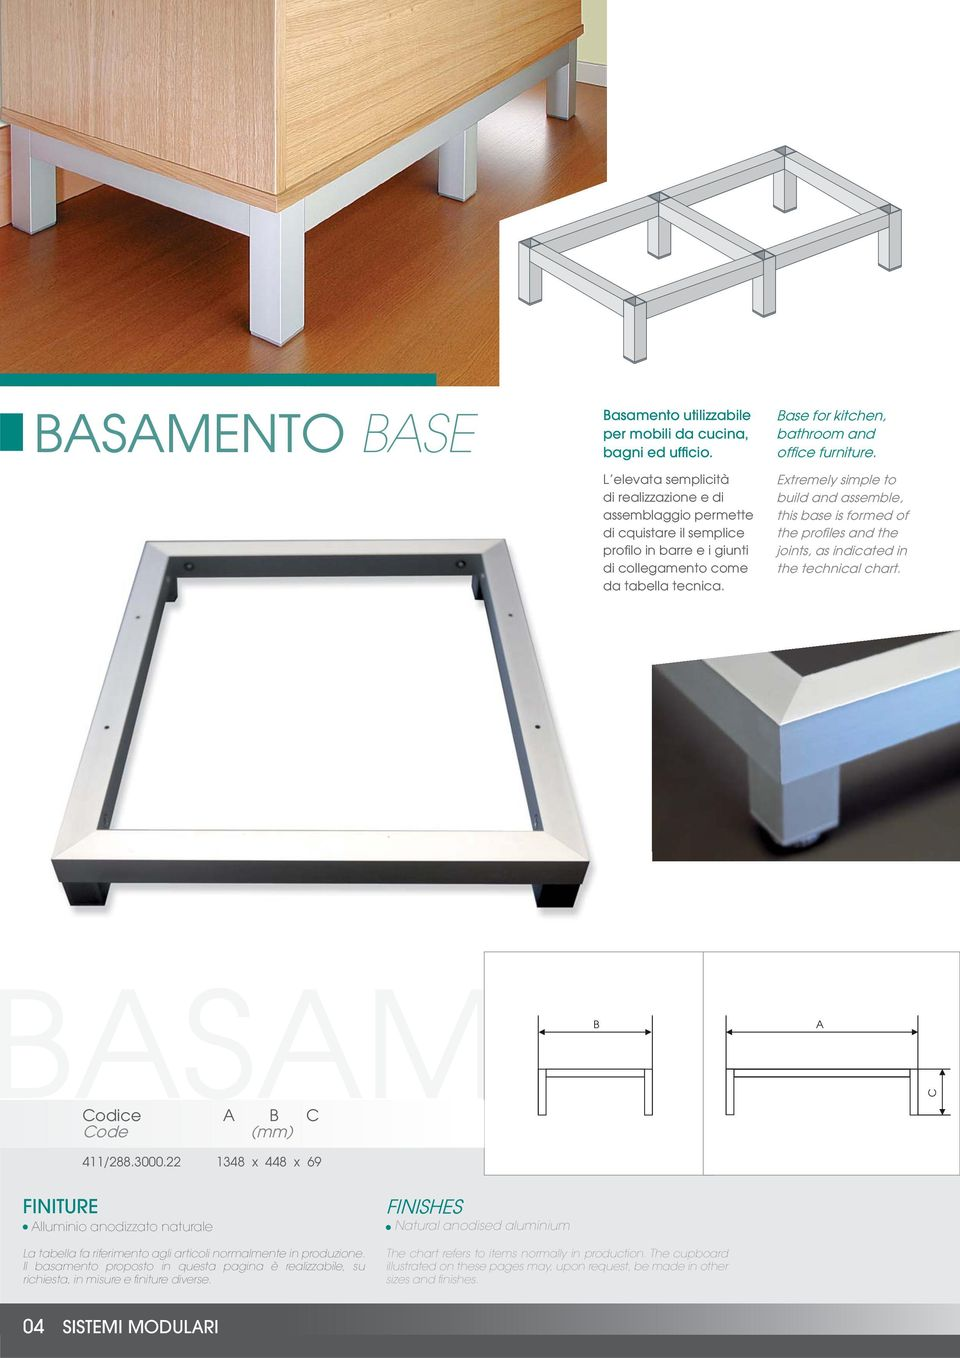 Base for kitchen, bathroom and offi ce furniture. Extremely simple to build and assemble, this base is formed of the profi les and the joints, as indicated in the technical chart.